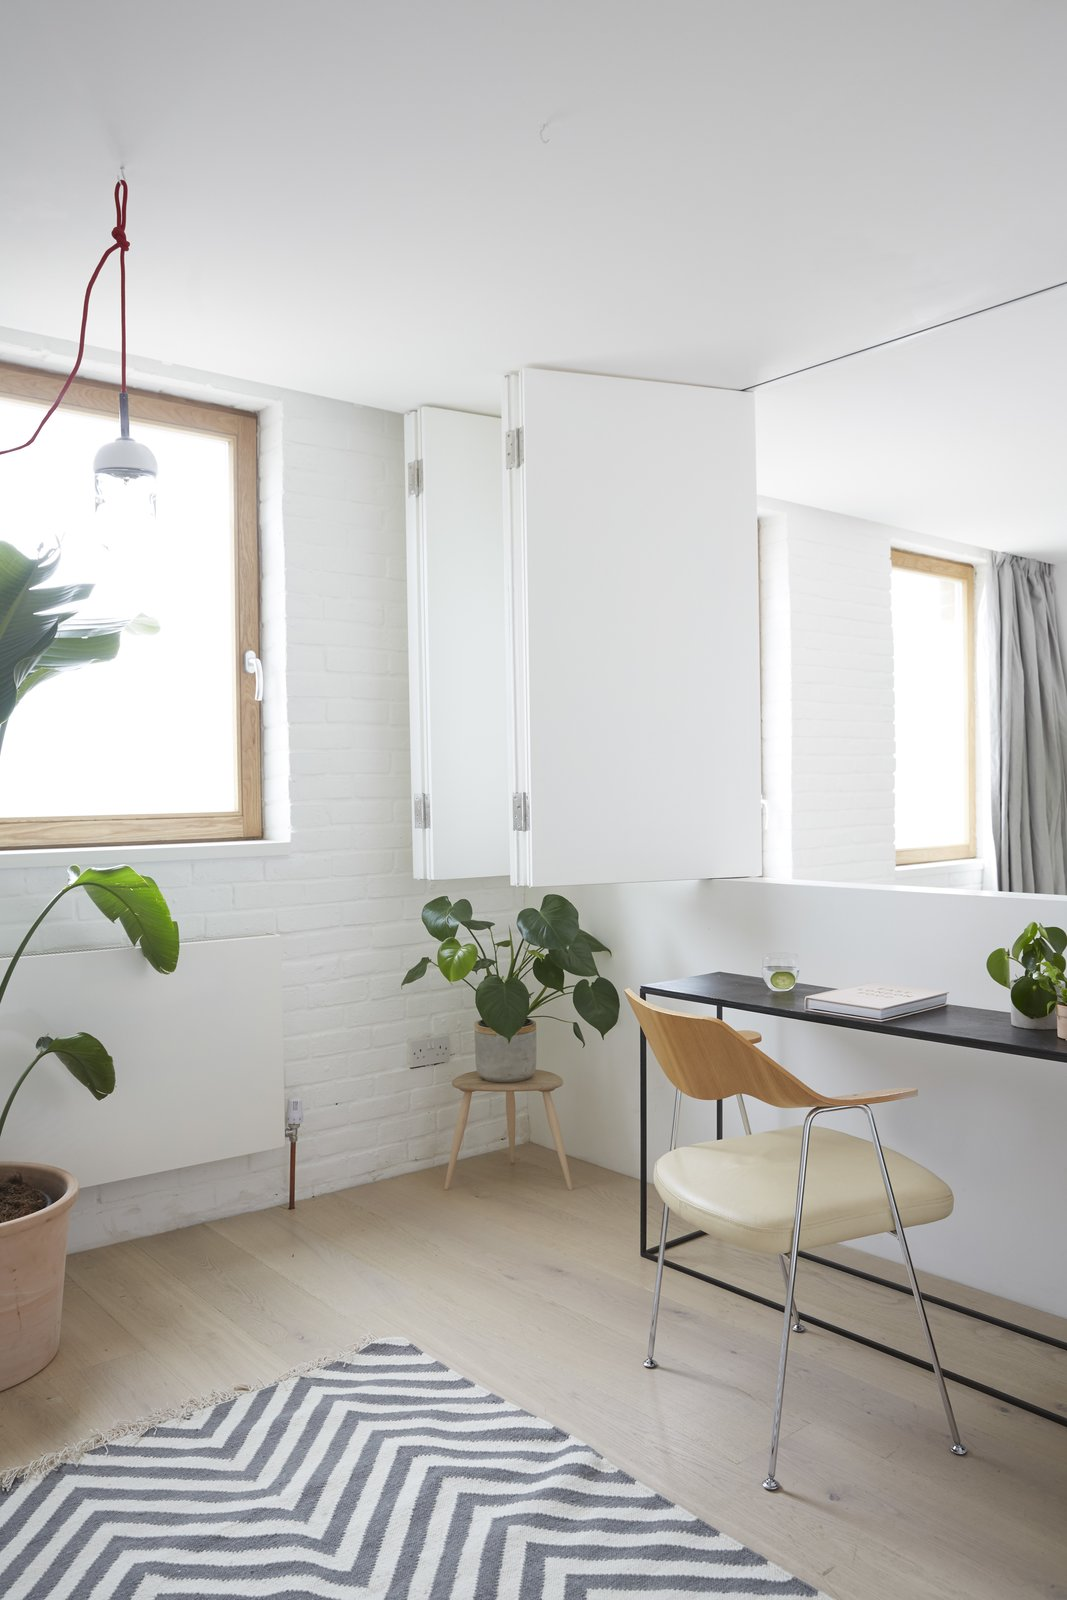 The flexible home-office space overlooks the living room below